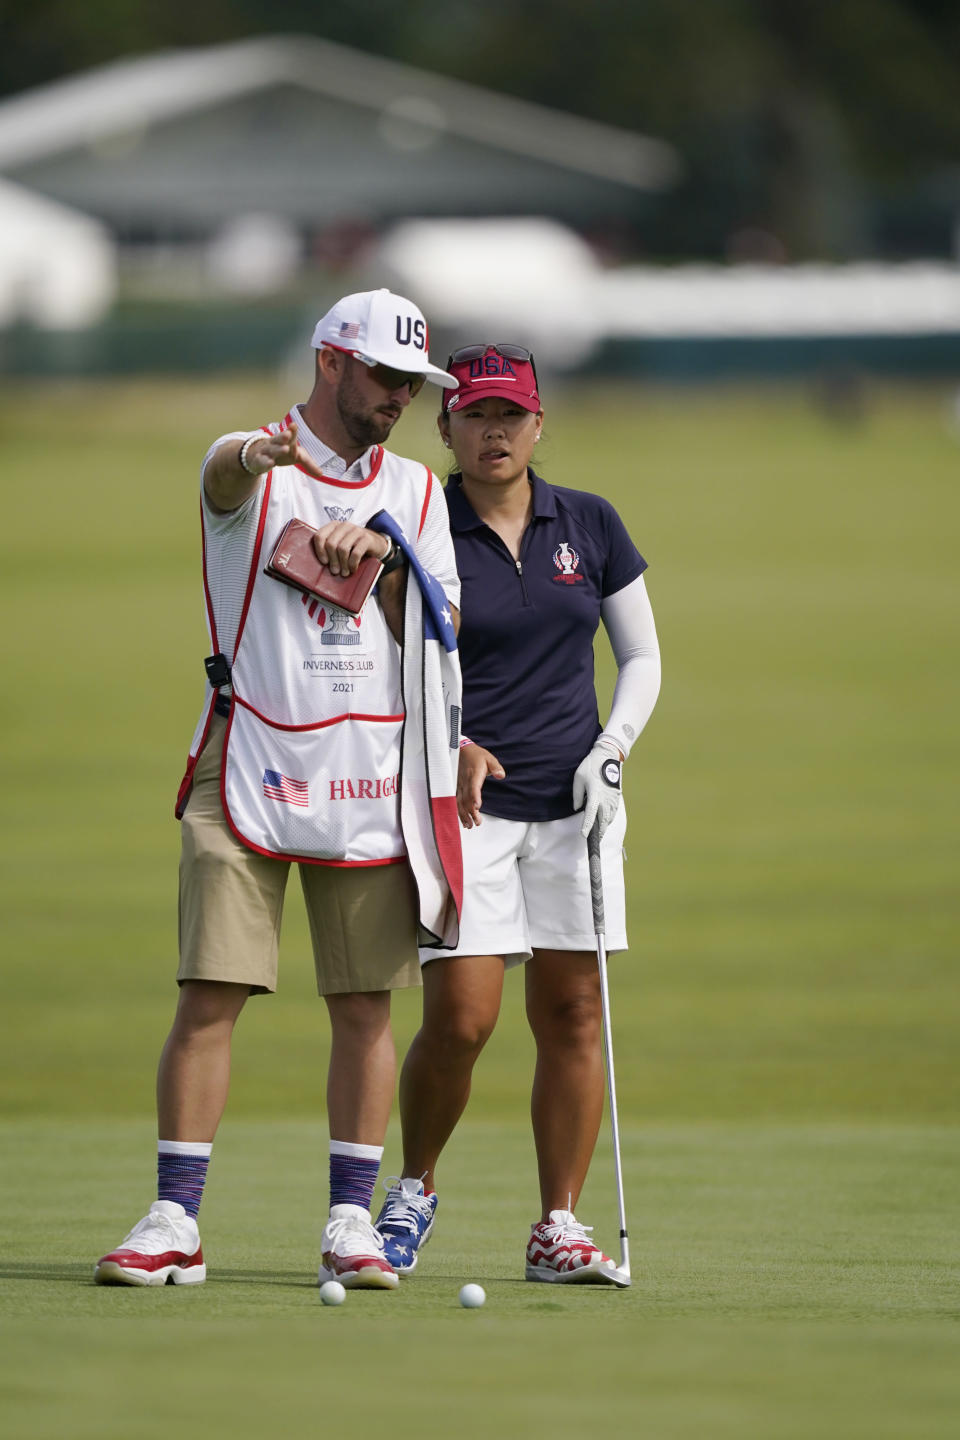 United States' Mina Harigae talks to her caddie on the 14th green during practice for the Solheim Cup golf tournament, Friday, Sept. 3, 2021, in Toledo, Ohio. (AP Photo/Carlos Osorio)